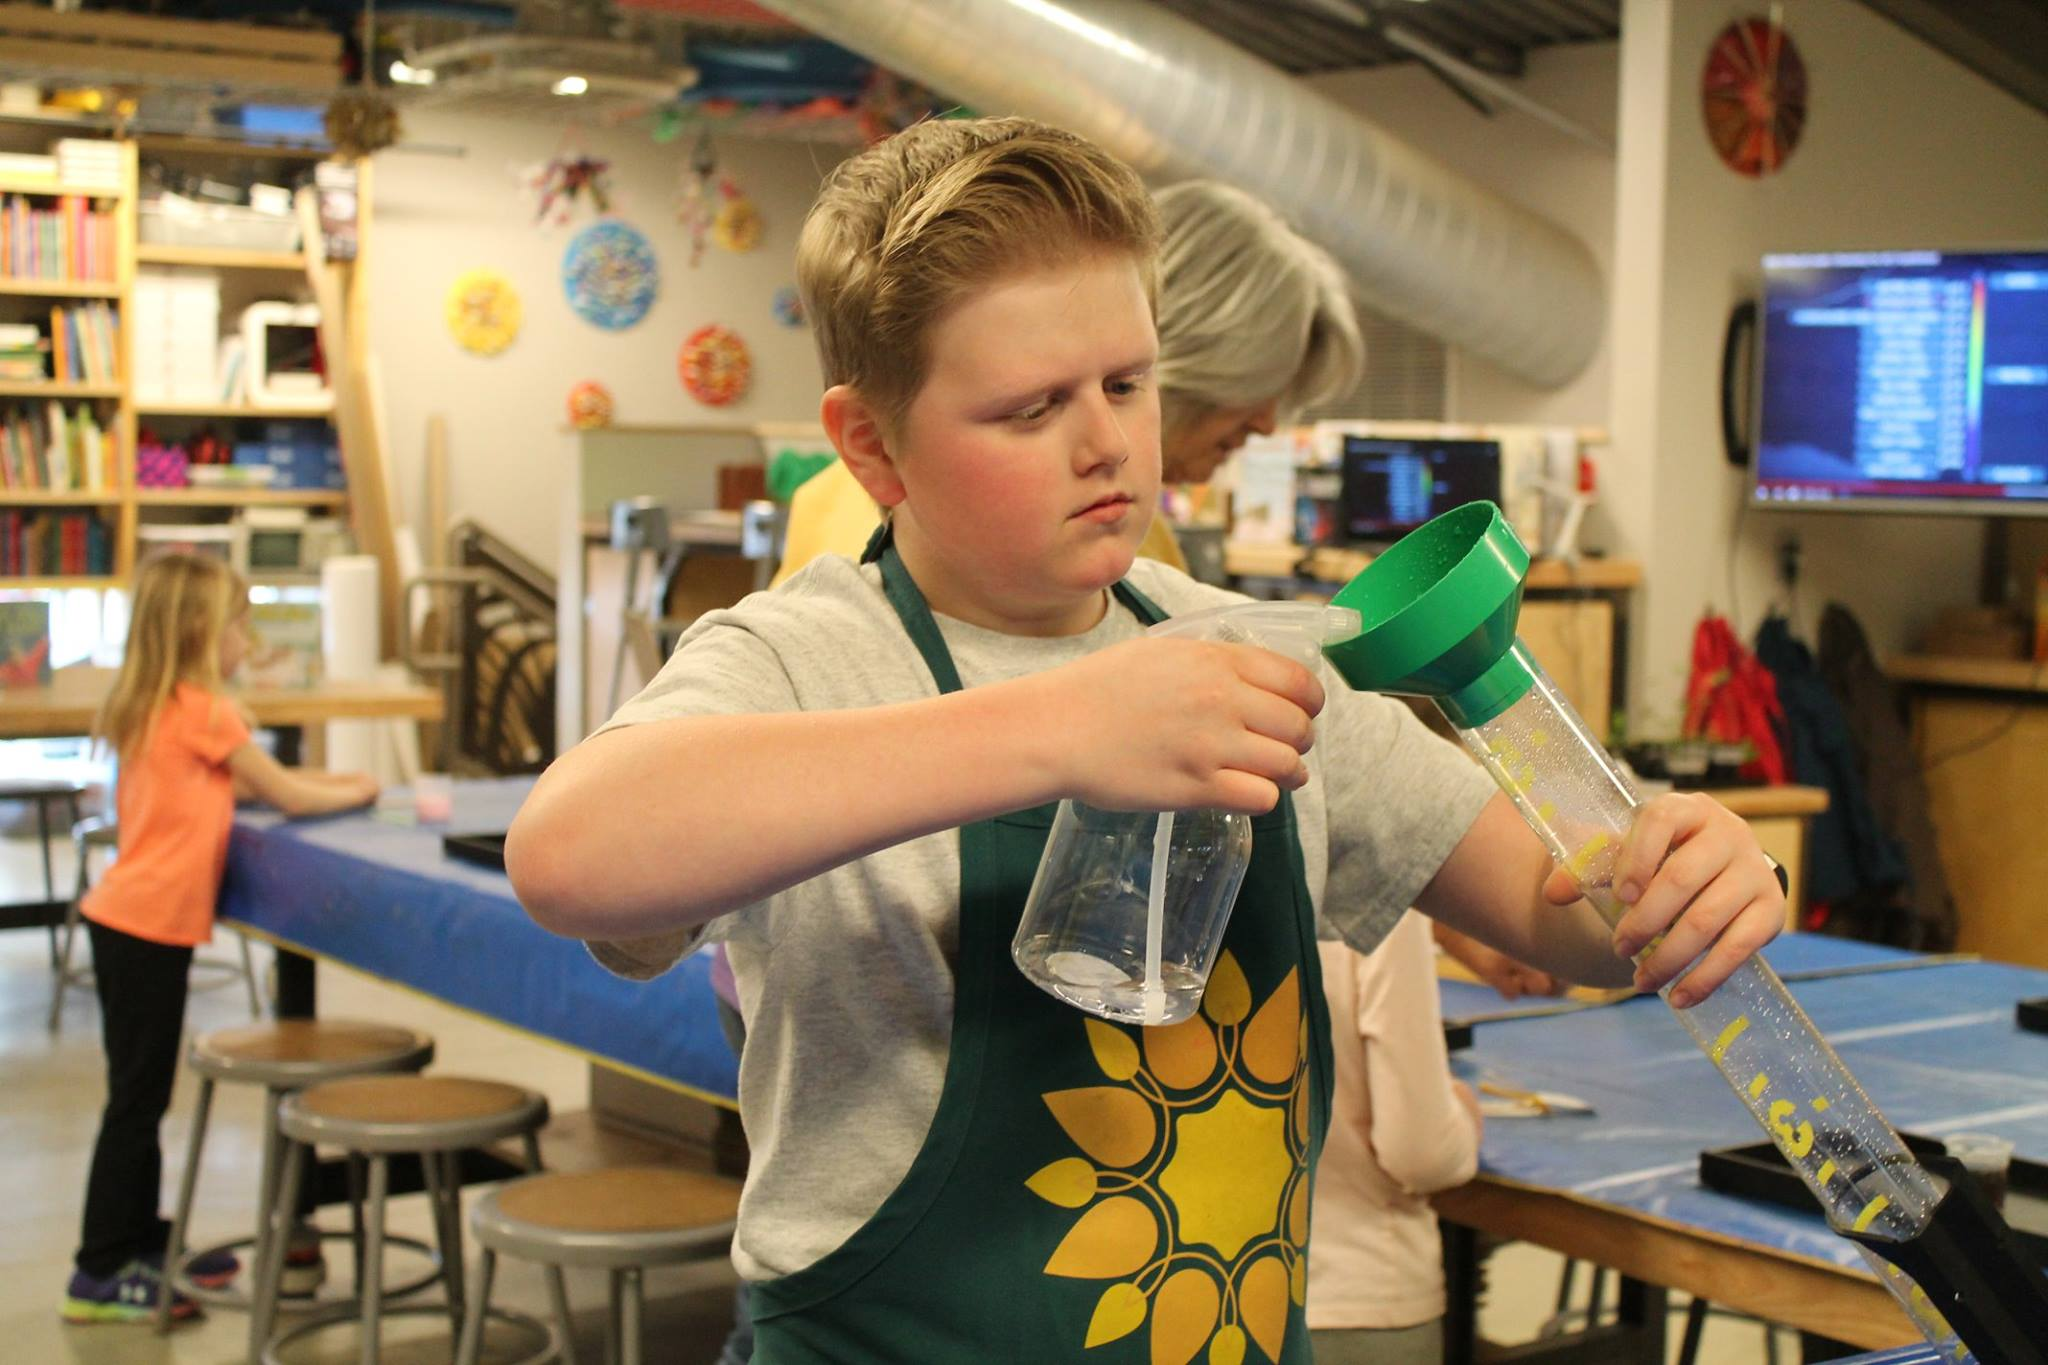 Teen Volunteer Playworker at the Children's Museum of Southern Minnesota